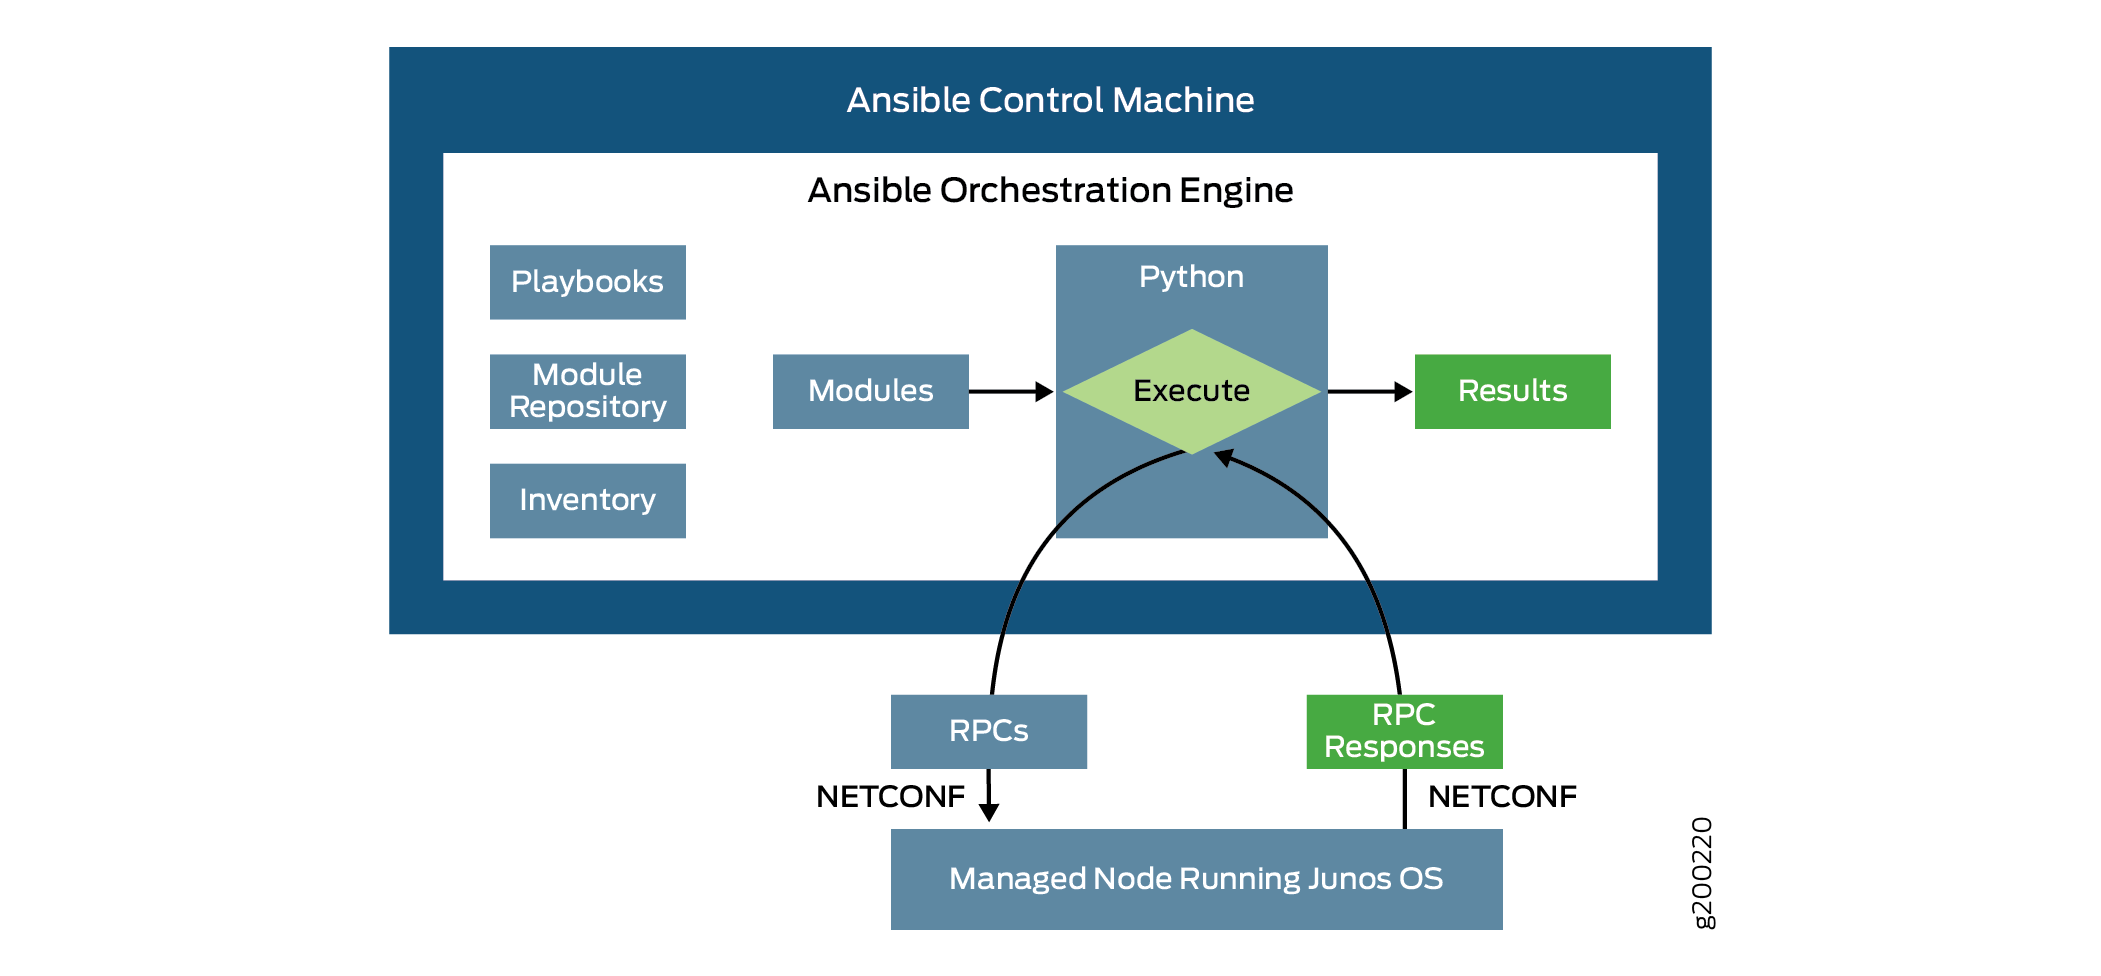 Ansible Communication with Devices Running Junos OS